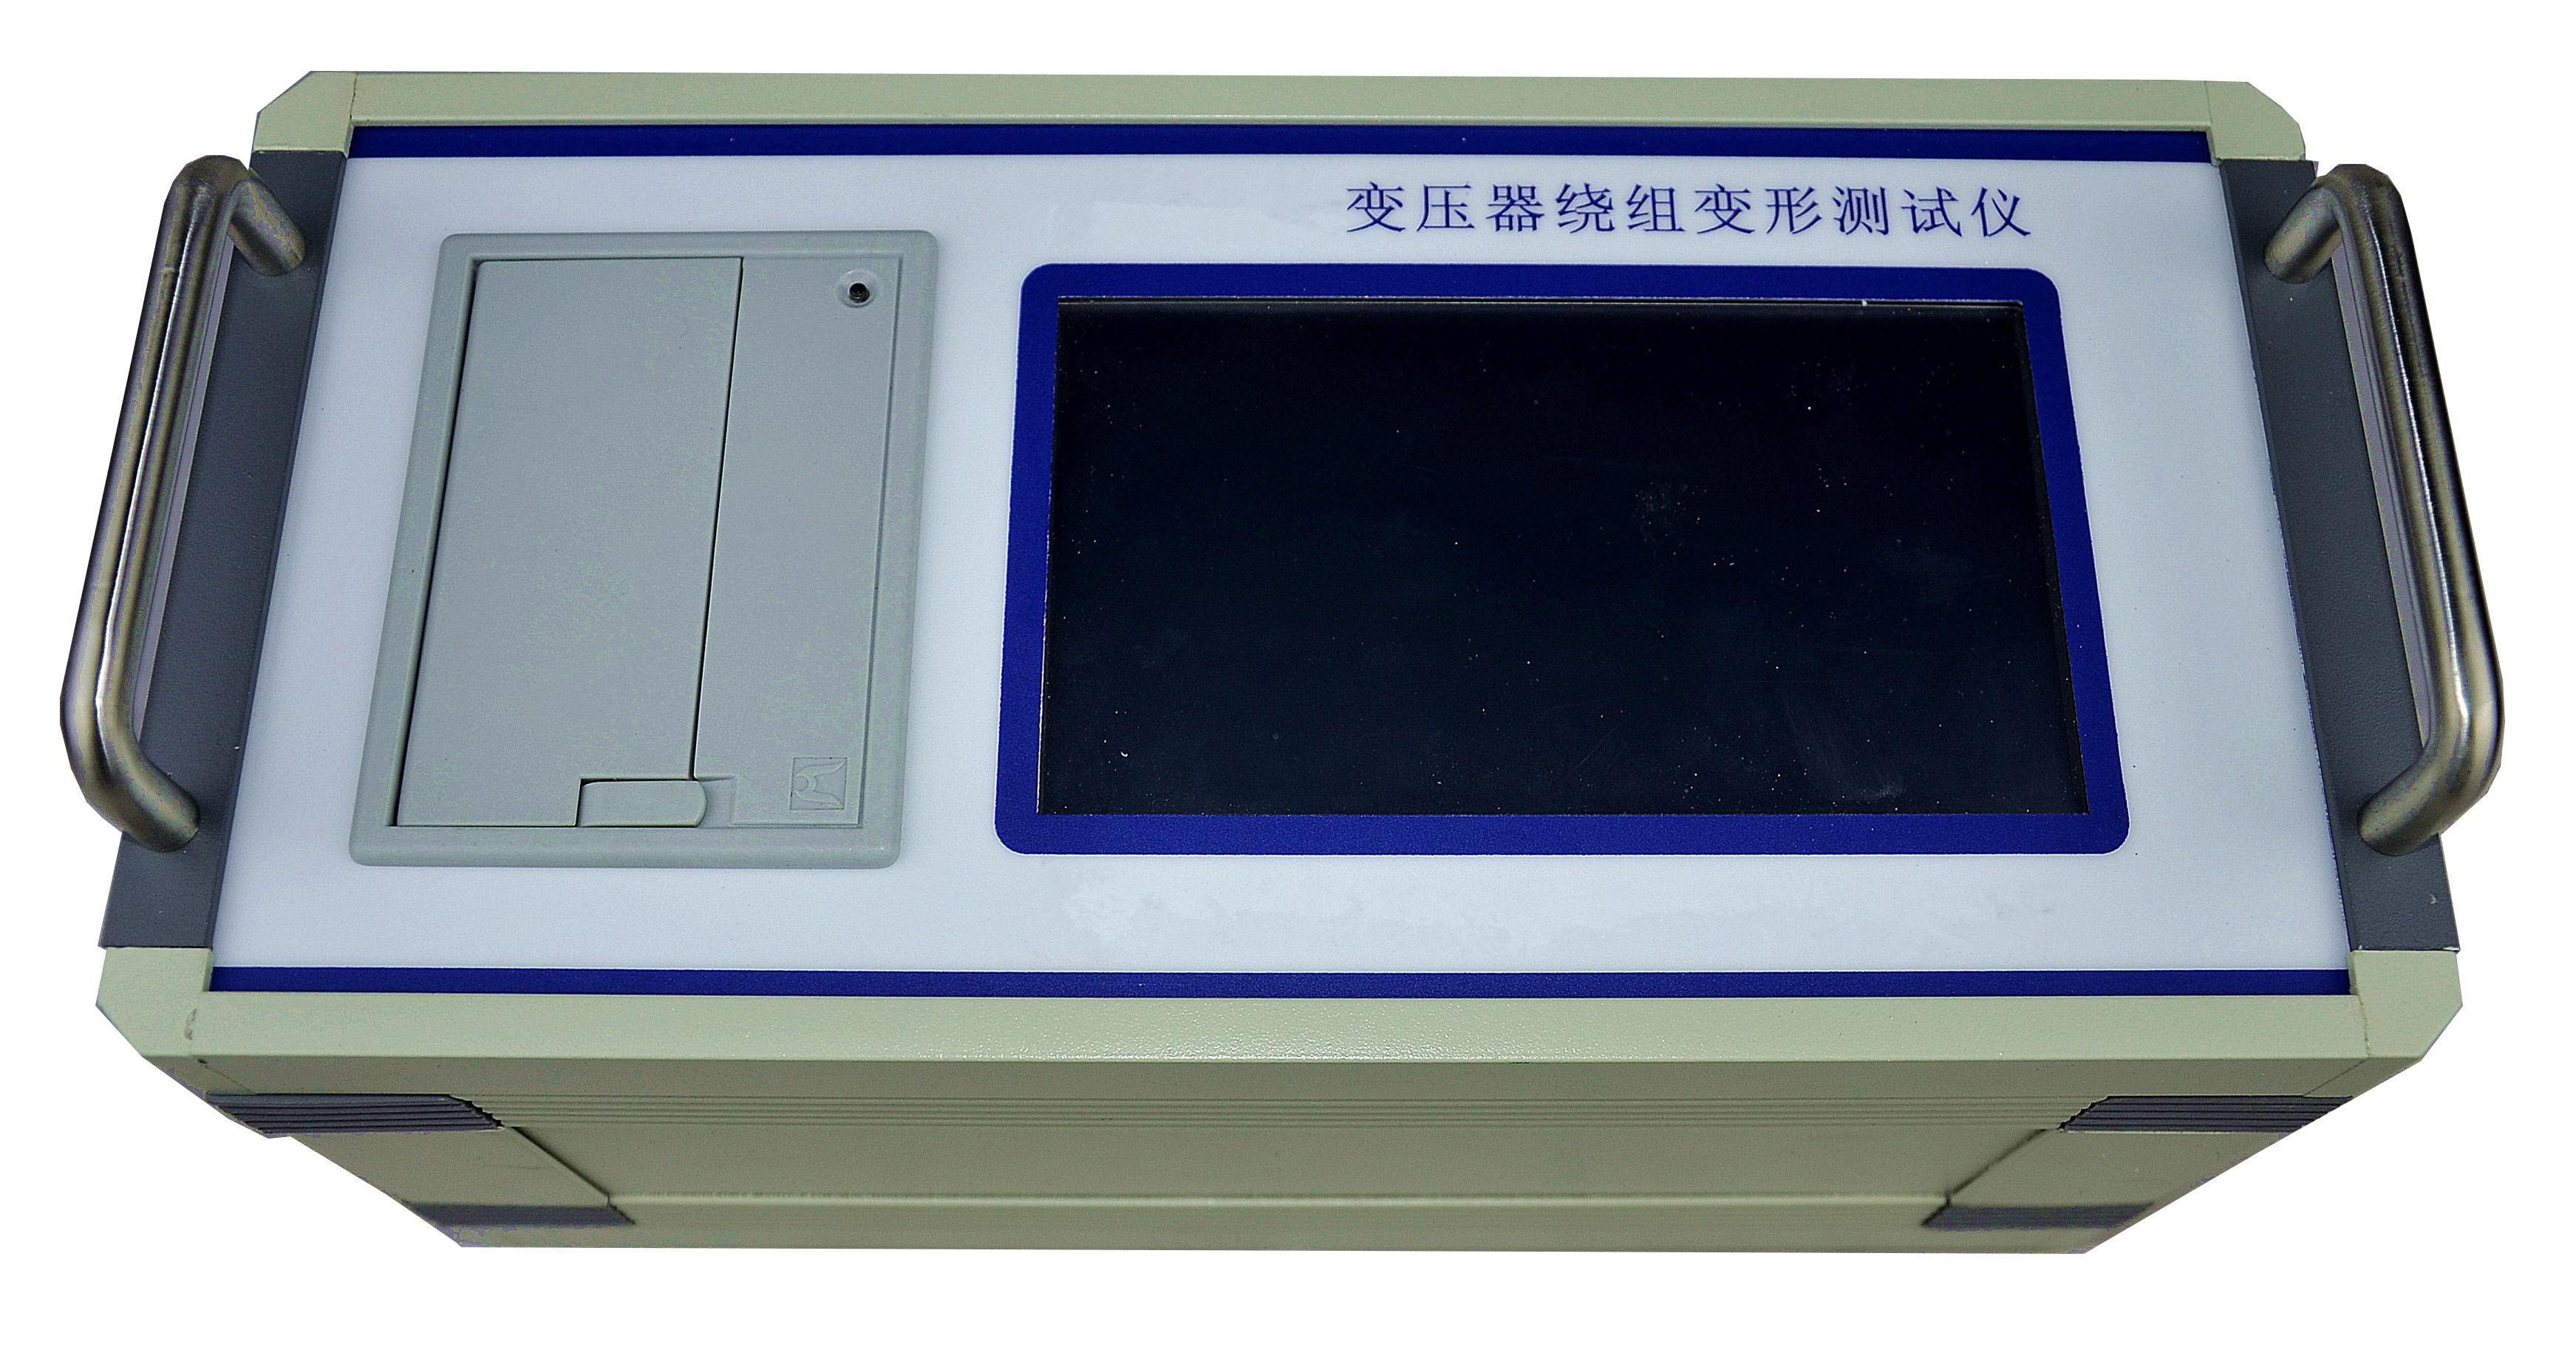 JSRZ-902 Series Sweep Frequency Response Analyzer, Transformer Winding Deformation Tester